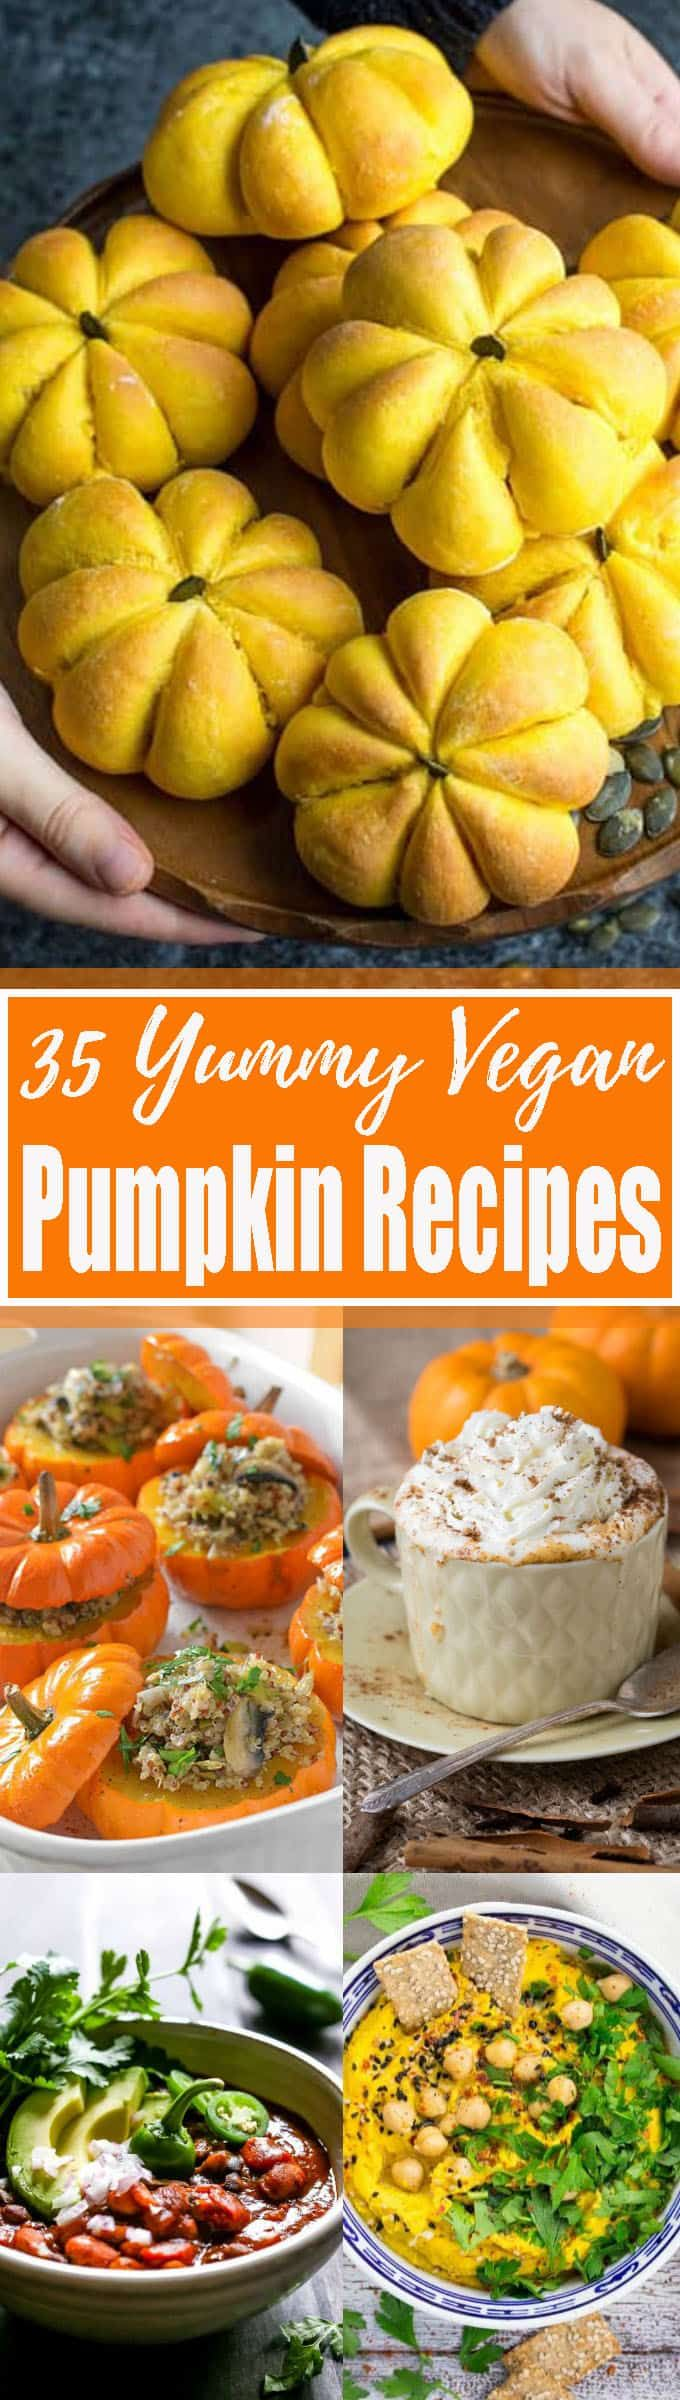 35 Stunning Vegan Pumpkin Recipes You Need To Try This Fall!! Yaay! Pumpkin season is finally here! I'm a real pumpkin addict, so I just had to put together a massive roundup of delicious vegan pumpkin recipes. It includes savory vegan recipes as well as vegan dessert recipes. <3   veganheaven.org